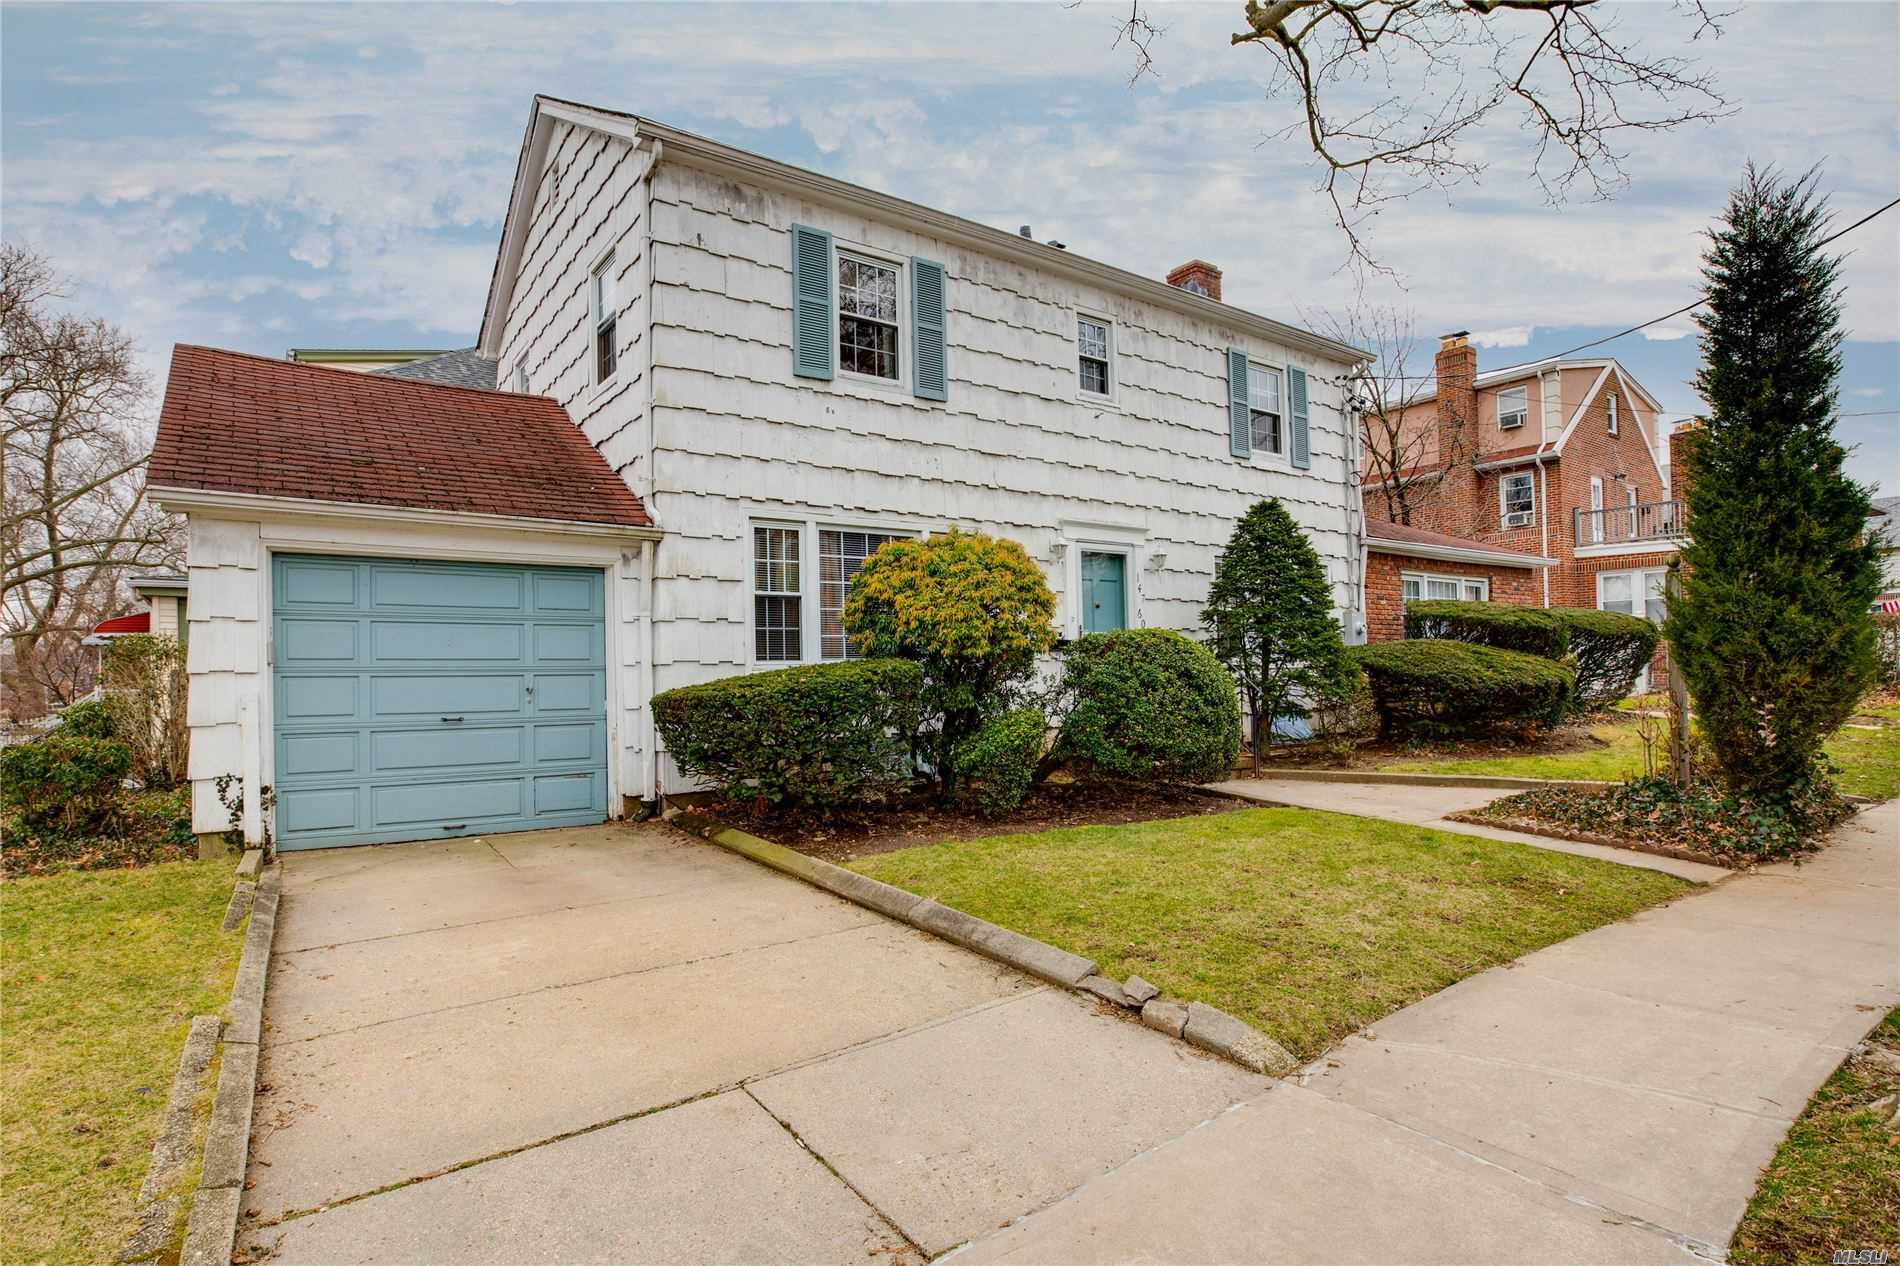 Welcome to this spacious center hall detached colonial located within the Kissena Park North neighborhood. The house receives an abundance of sunlight, has refinished oak wood floors and updated bathrooms. It is centrally located one block from the bus stop for the Q26 and Q27, one mile from the LIRR and 6 blocks from Kissena Park.